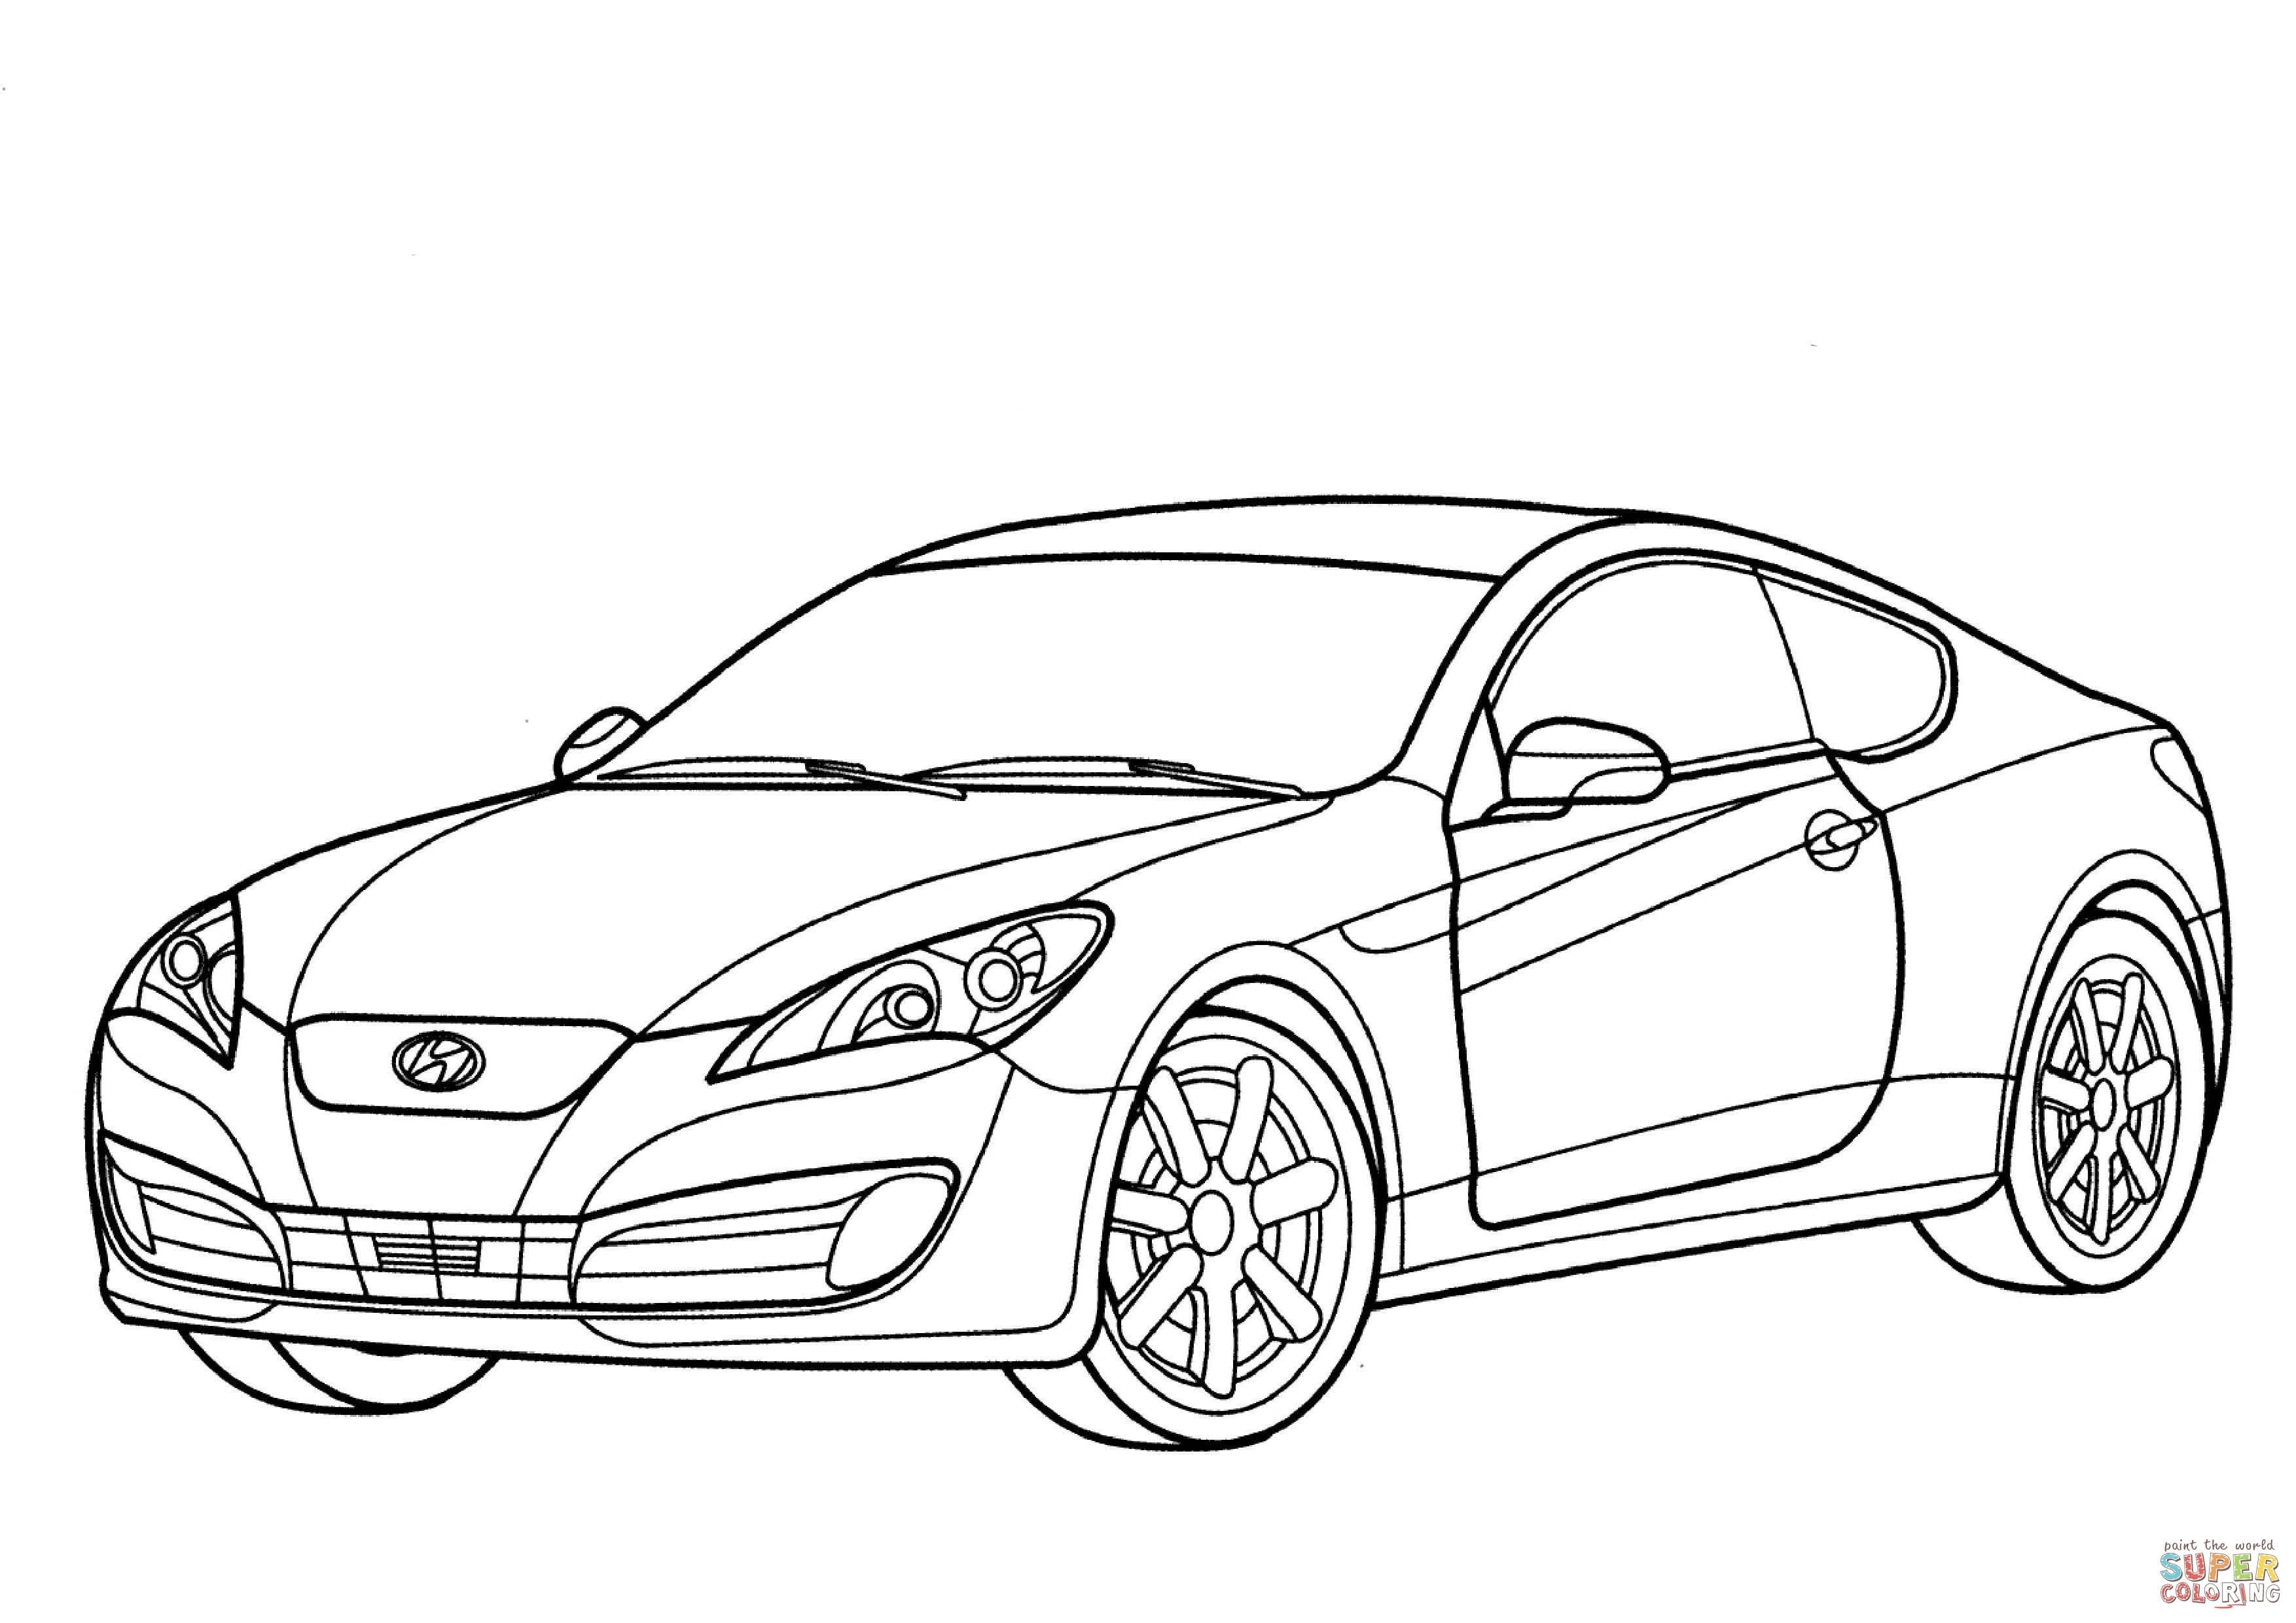 Bmw M3 Coloring Pages At Getdrawings